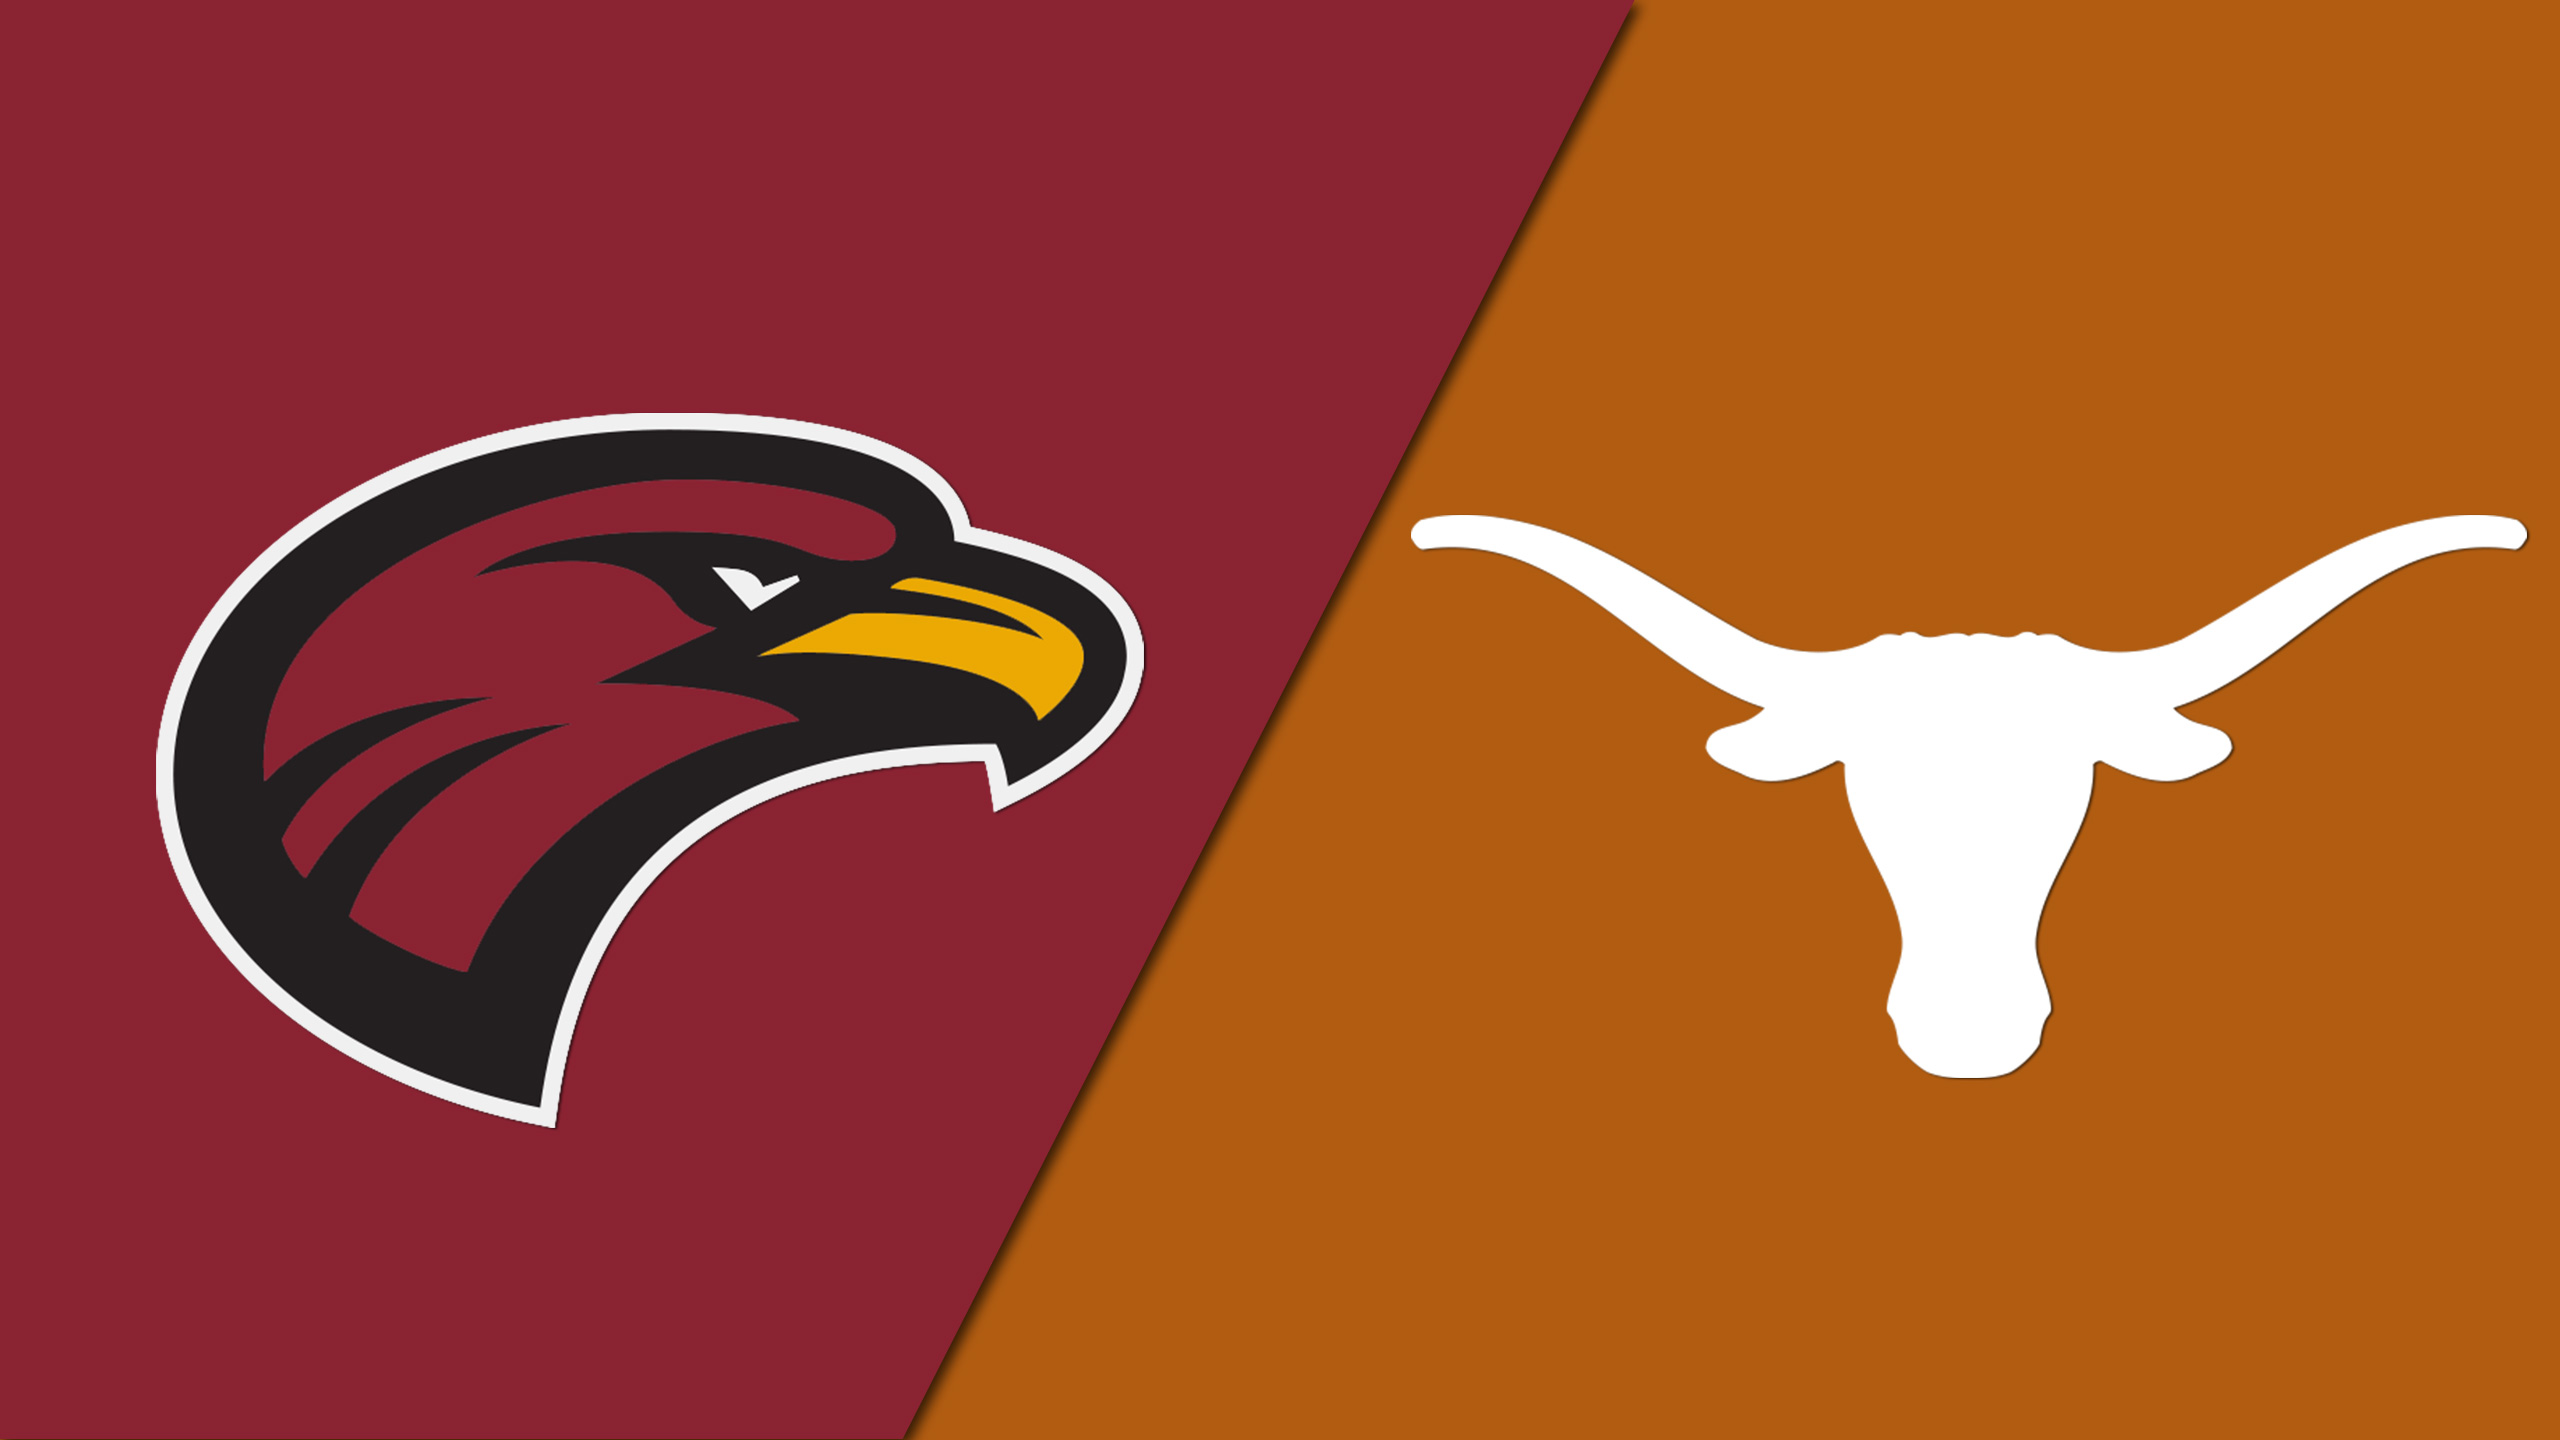 Louisiana-Monroe vs. Texas (M Basketball)